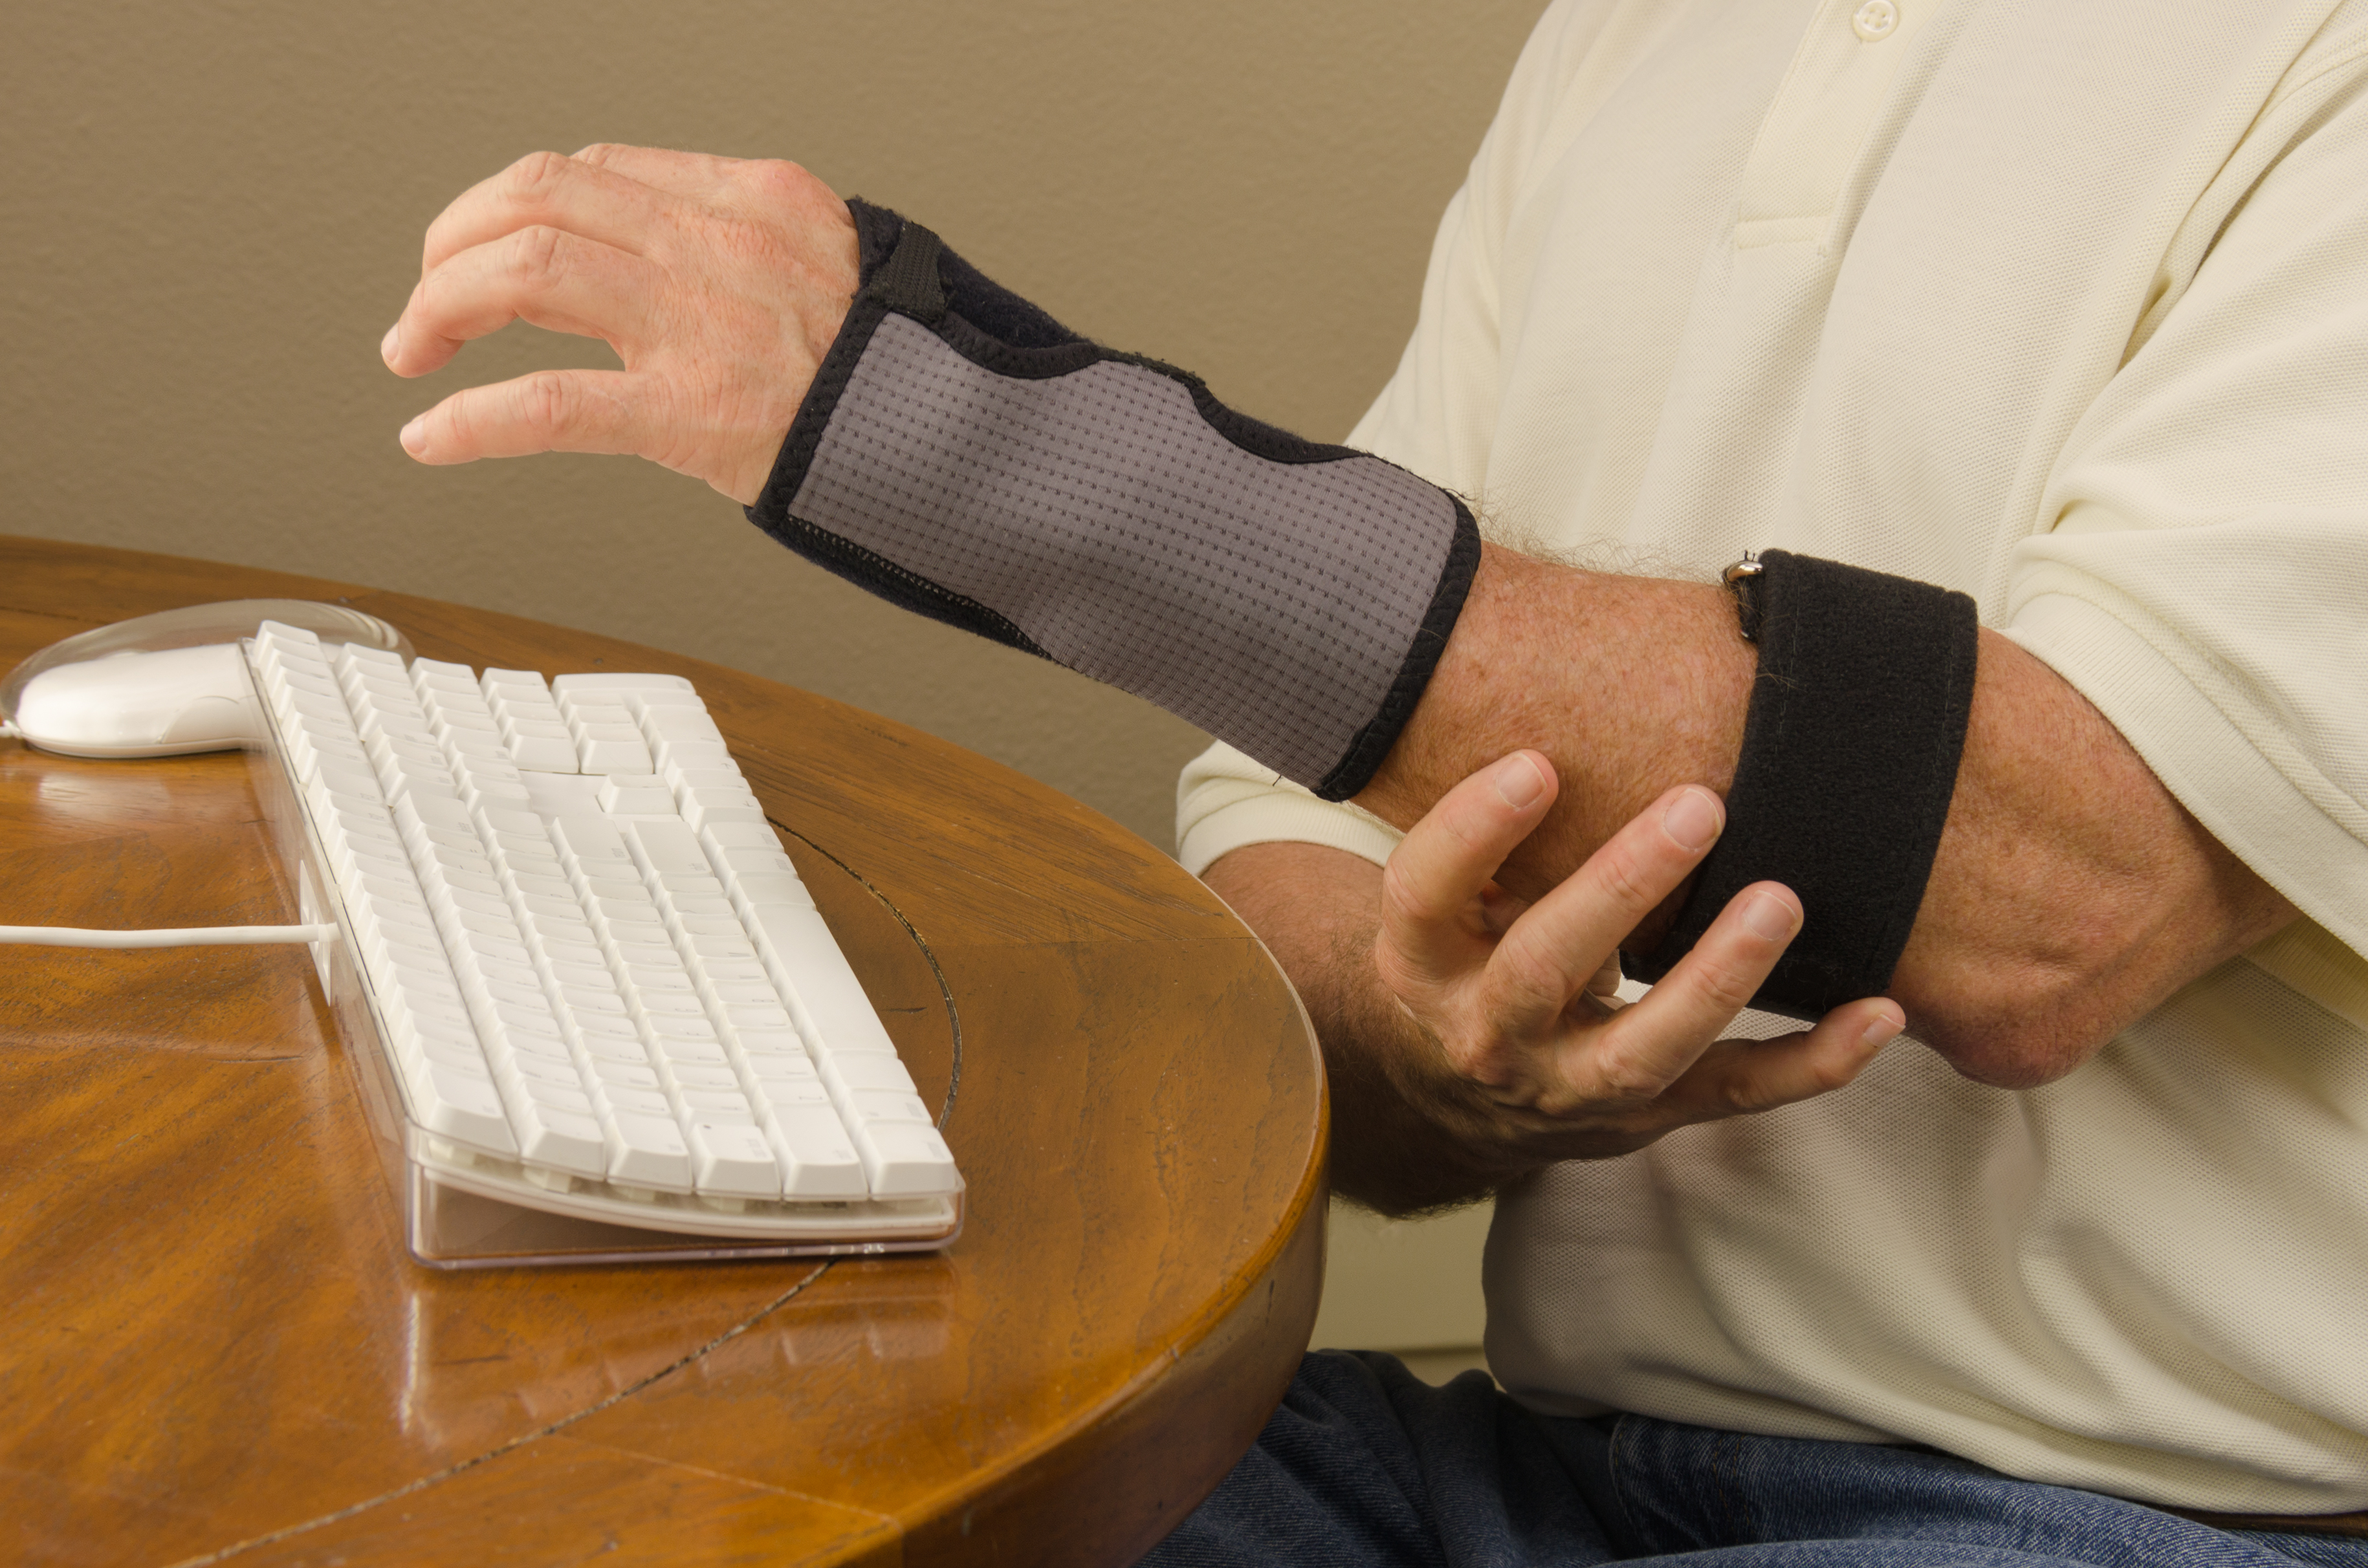 computer-tendinitis-carpal-tunnel-syndrome-repetitive-stress-55576042